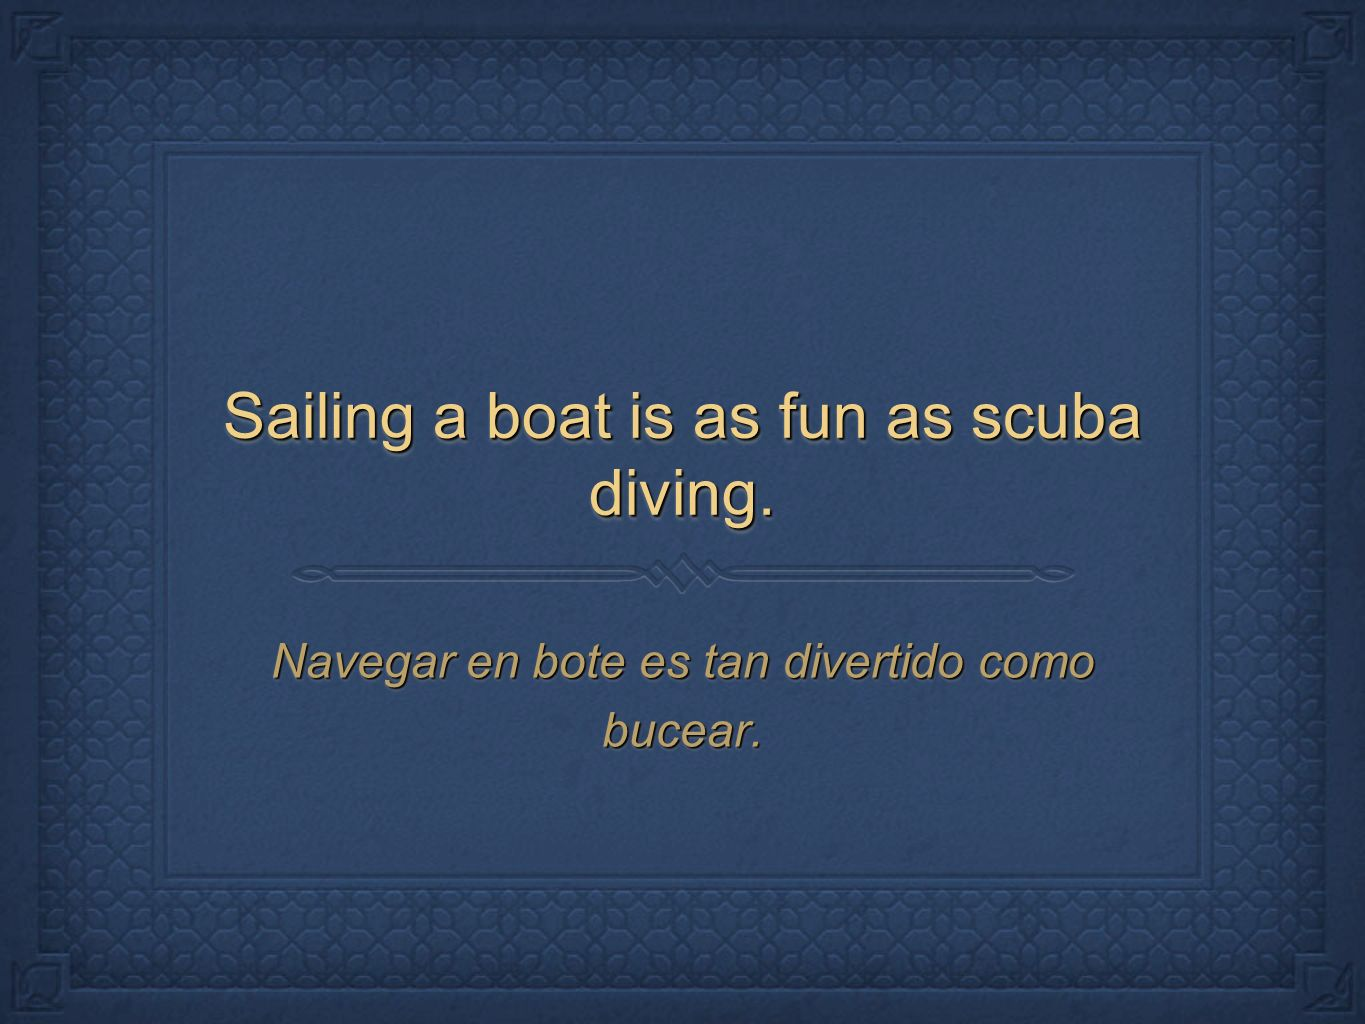 Sailing a boat is as fun as scuba diving.